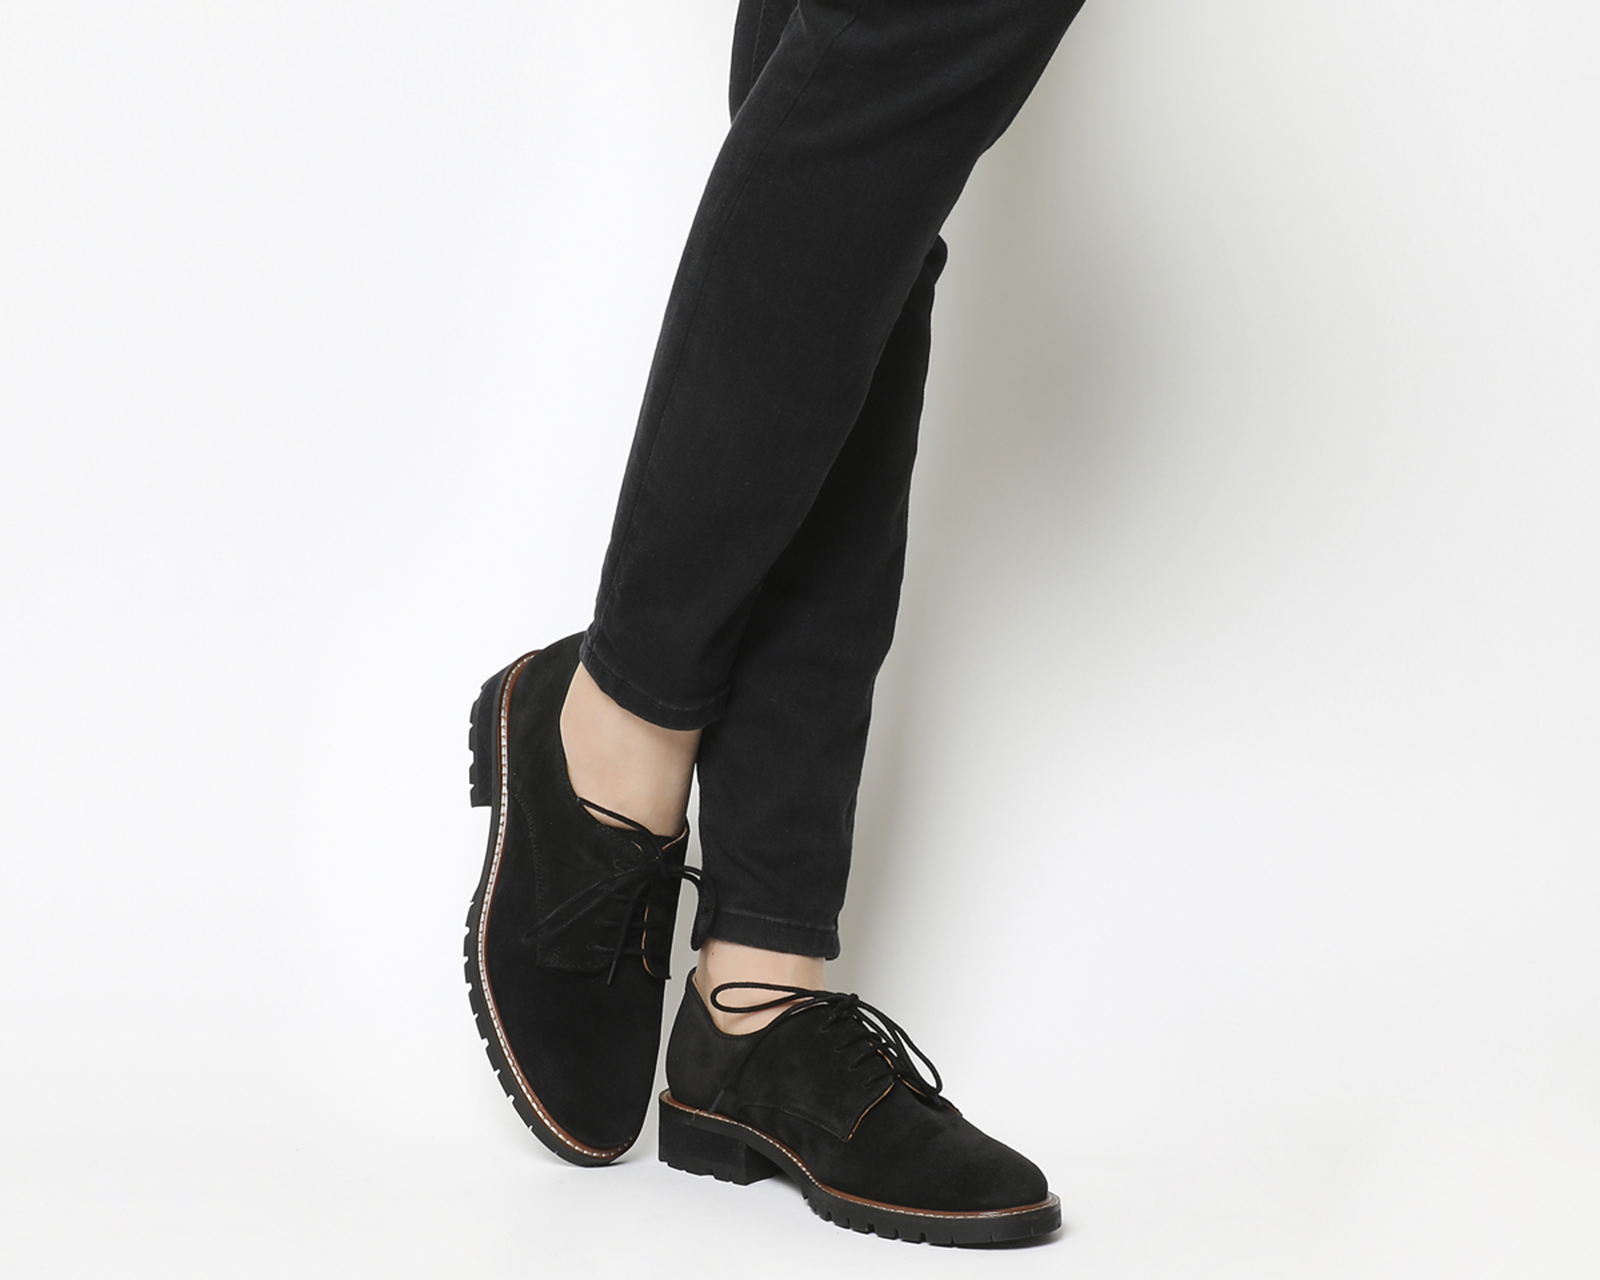 Kennedy Lace Up Shoes Black Suede Flats